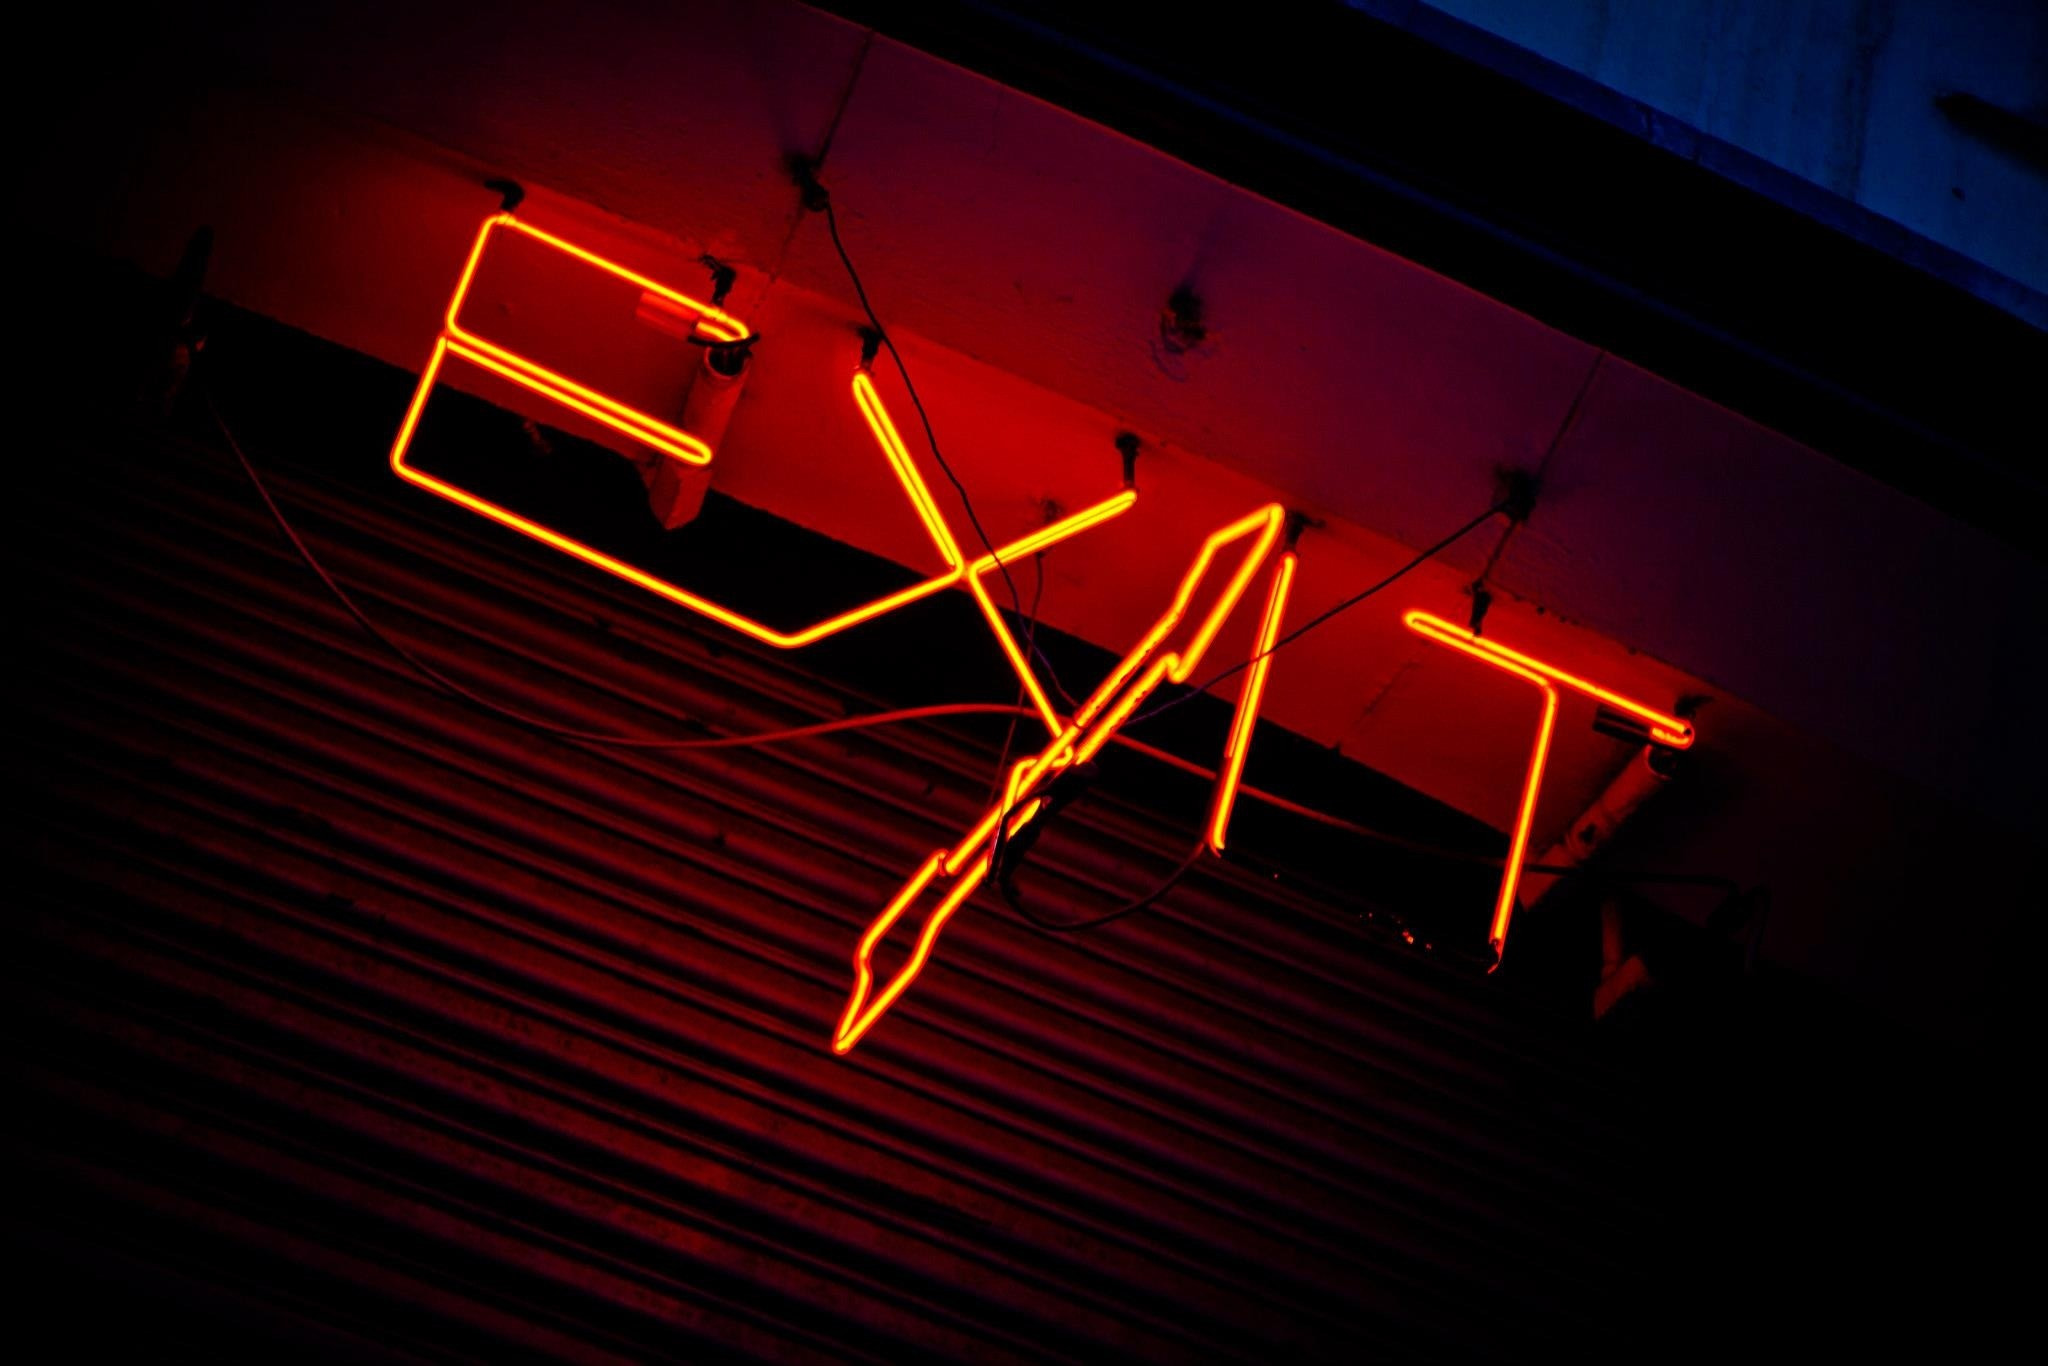 Photograph Exit Sign by Sheldon Steere on 500px